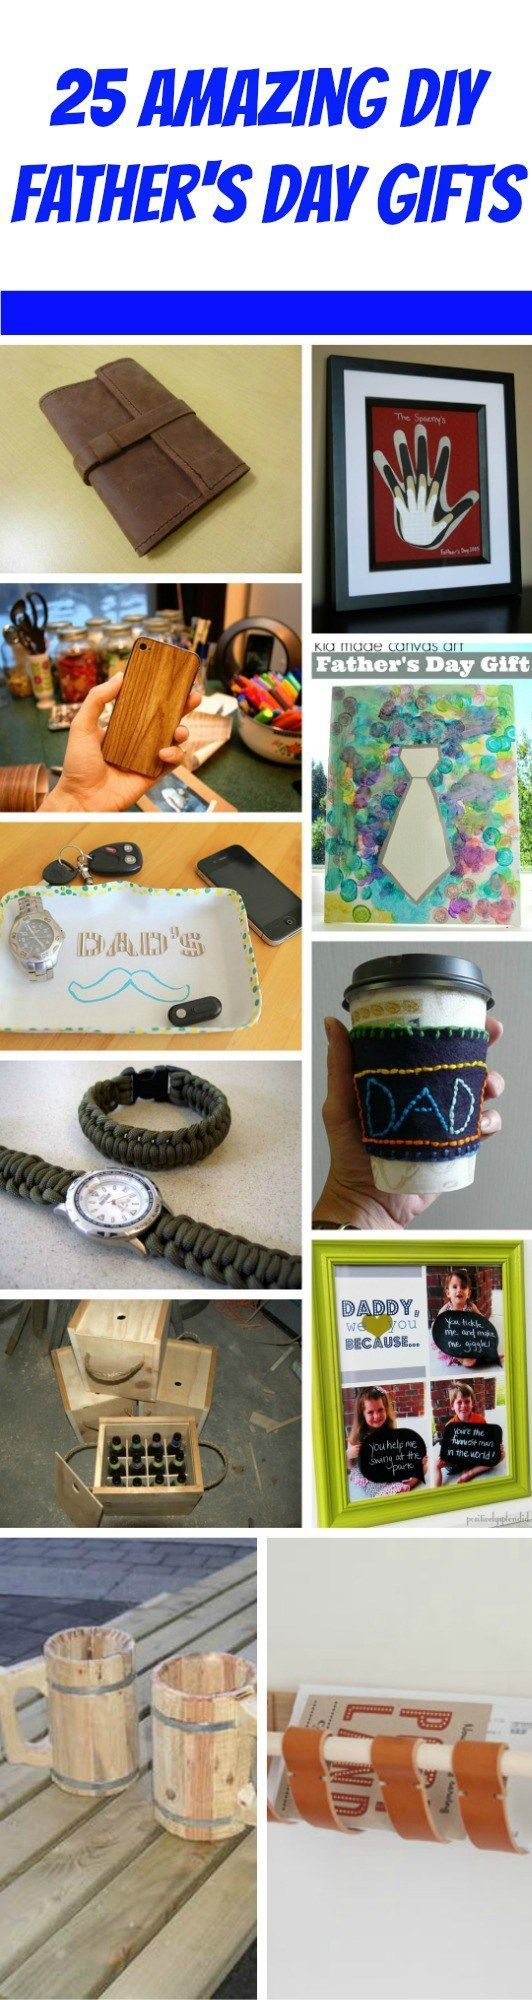 25 Ridiculously Awesome Father's Day DIY Gifts